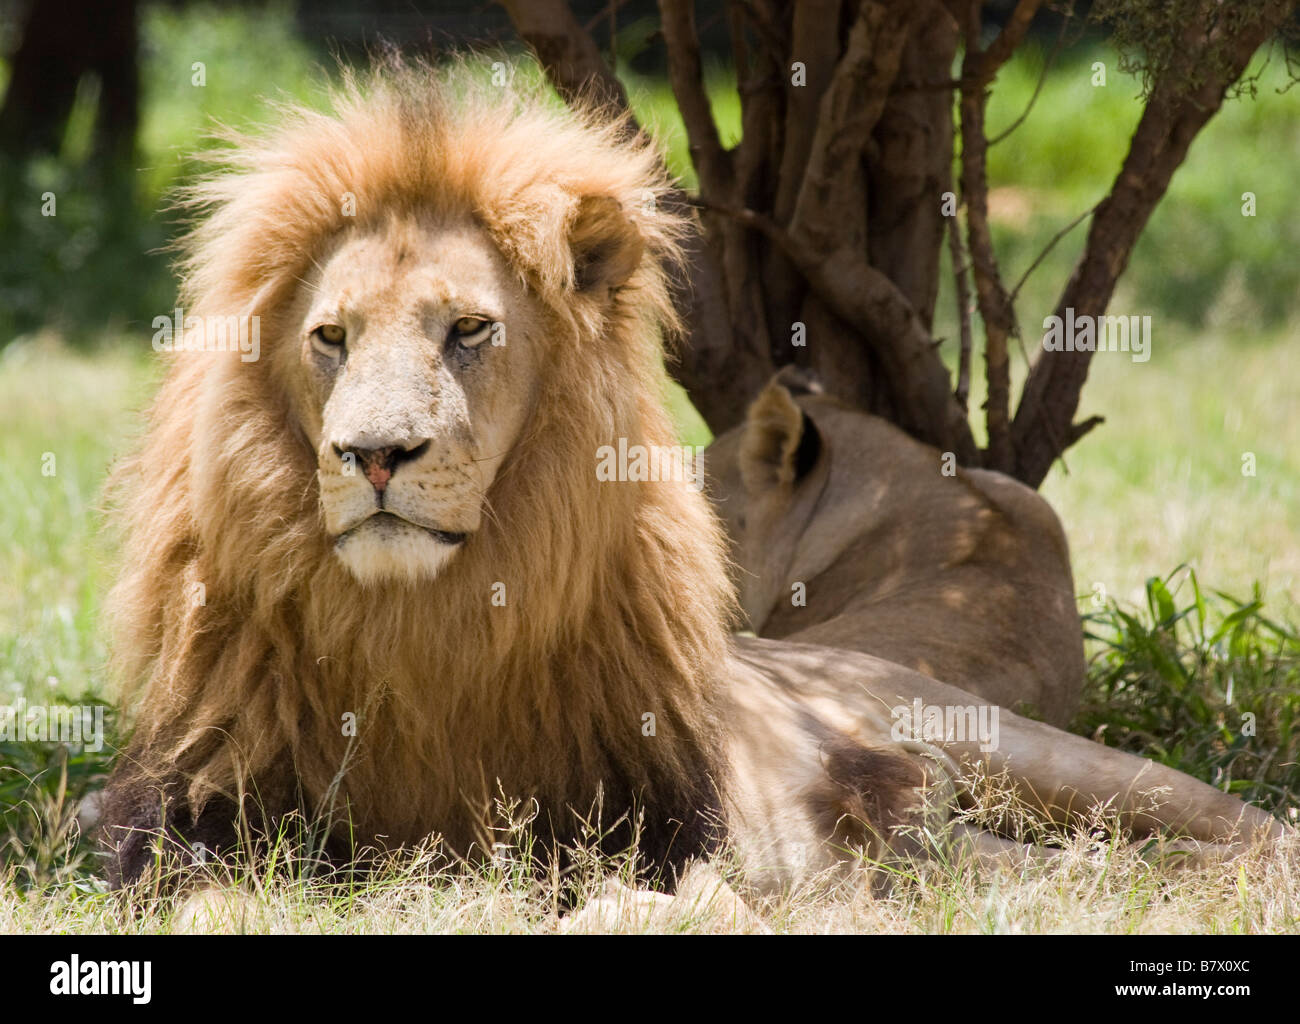 Lion Lion Park Afrique du Sud Photo Stock